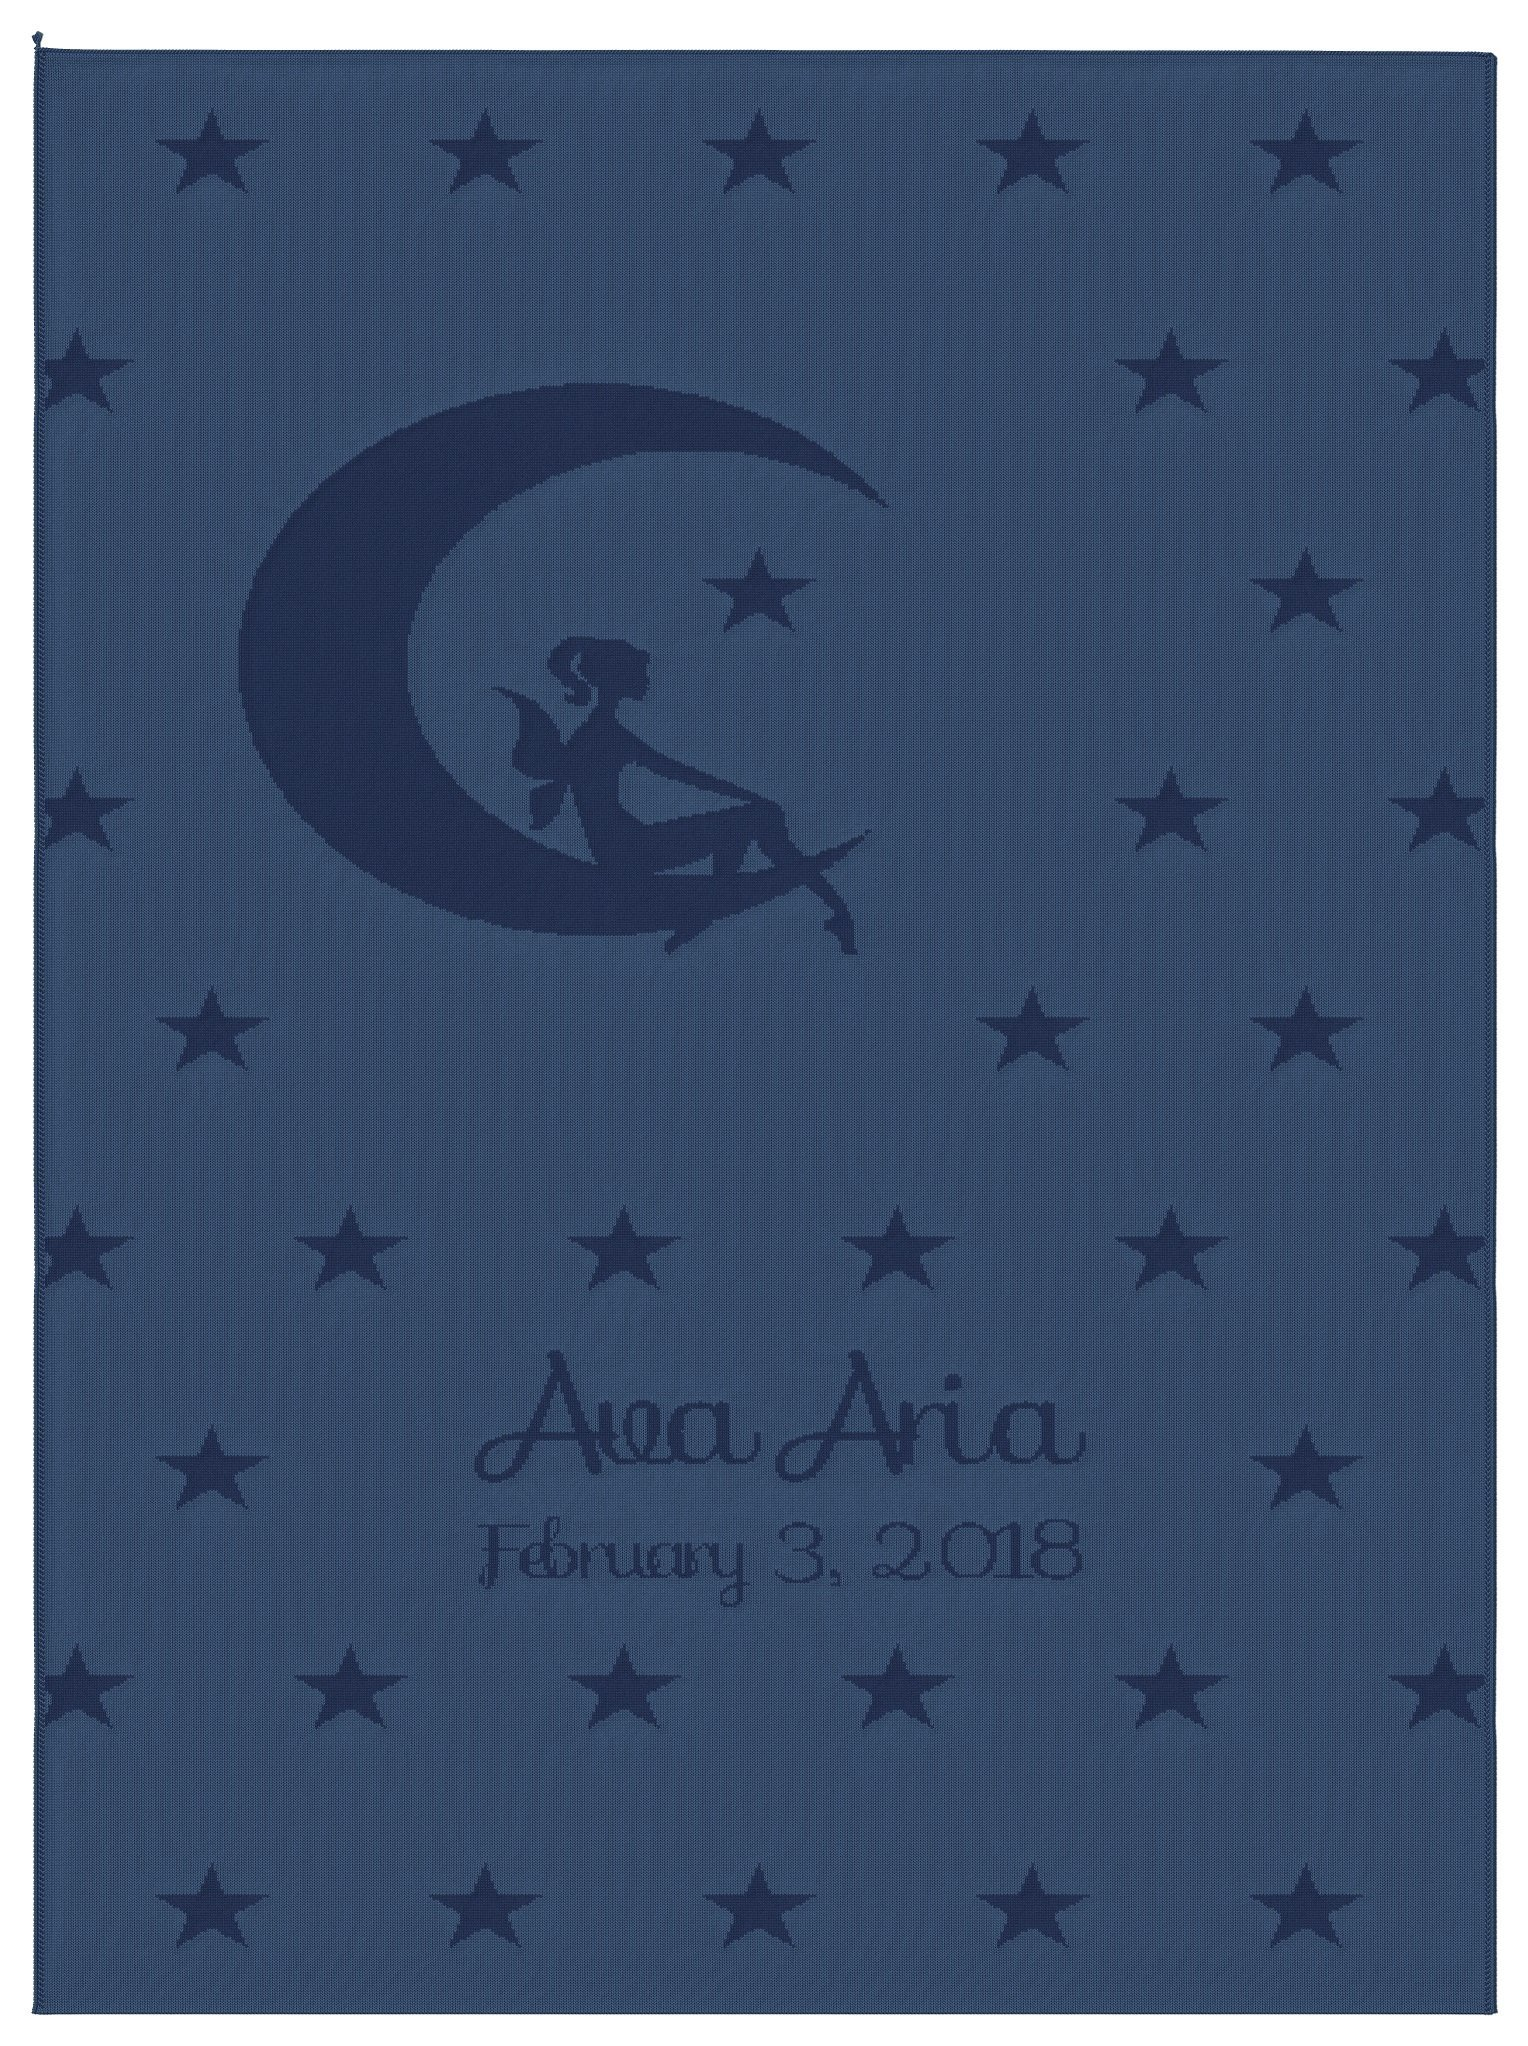 Emji Luxury Knit Baby Blanket with Fairy Stars, Customized Girl's Name Stroller Blanket, 100% Cashwool Merino Wool, Blue and Light Blue, Made in USA